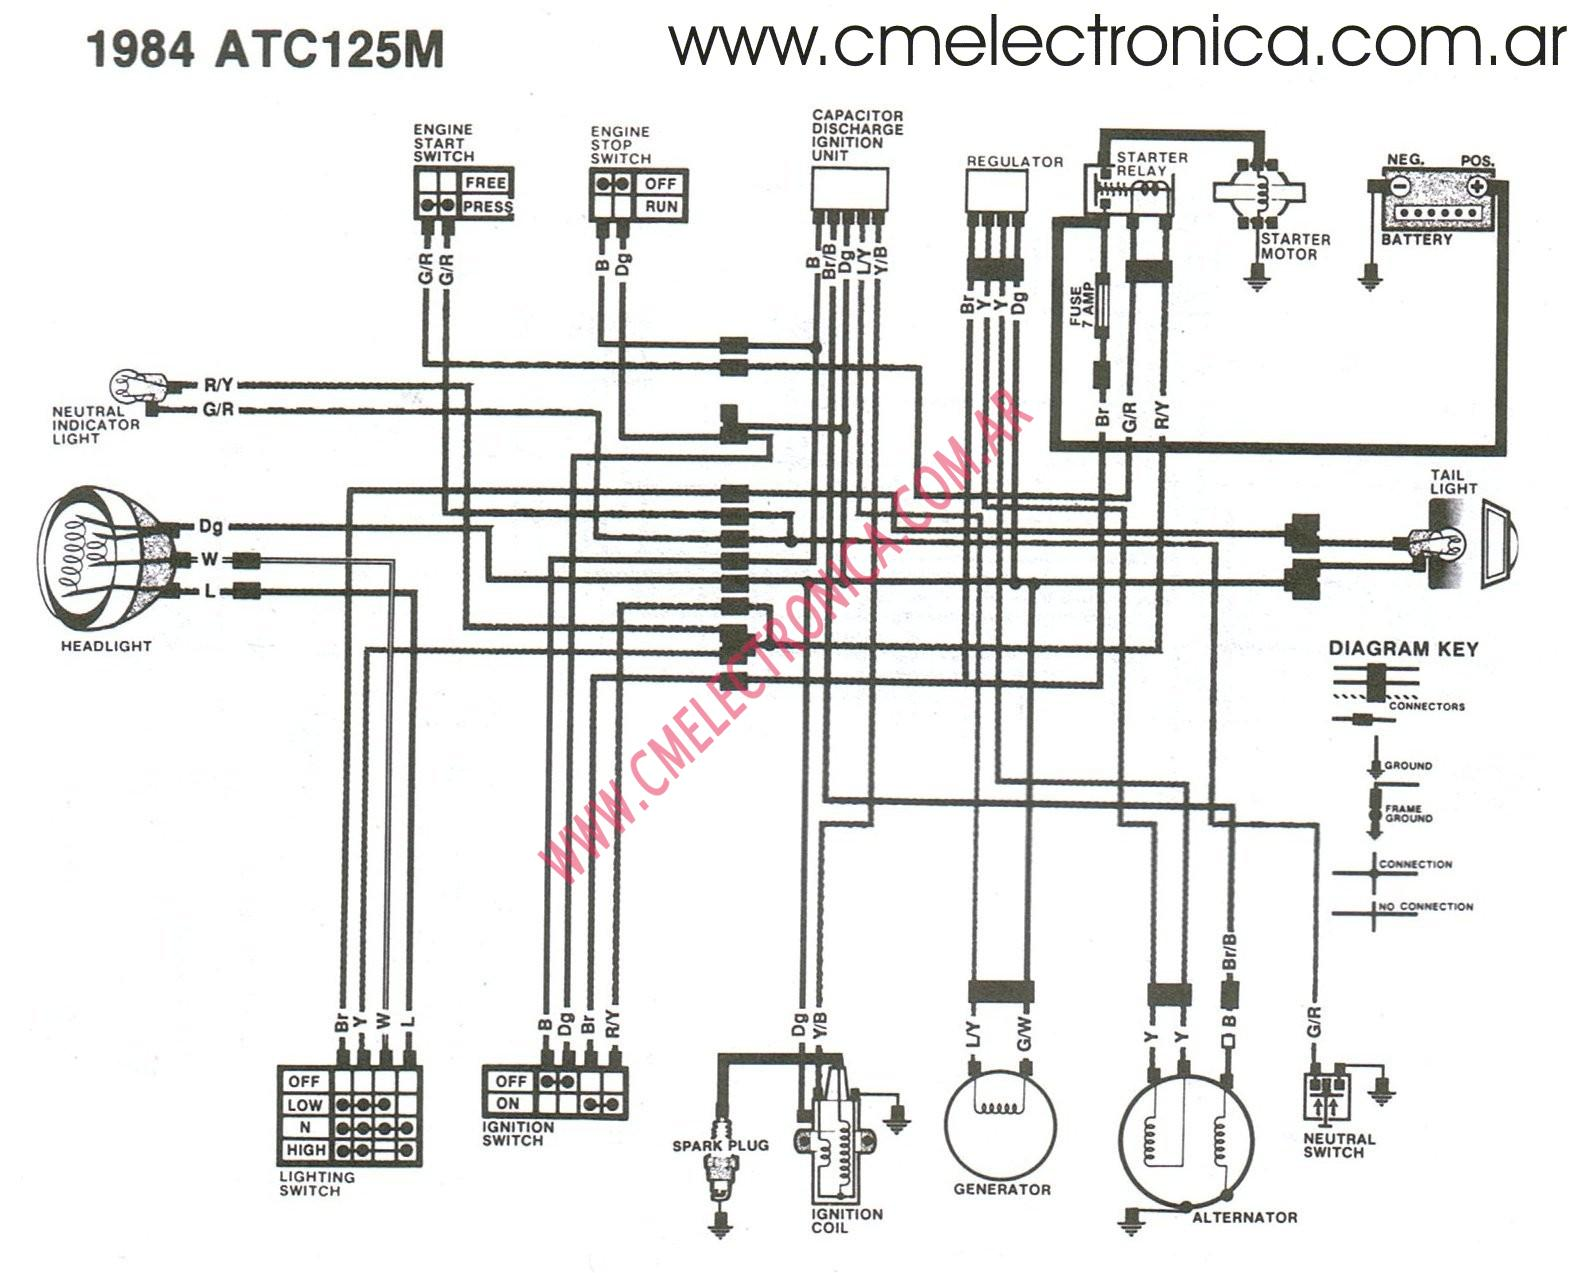 hight resolution of 84 honda 125 atc wiring diagram 84 get free image about